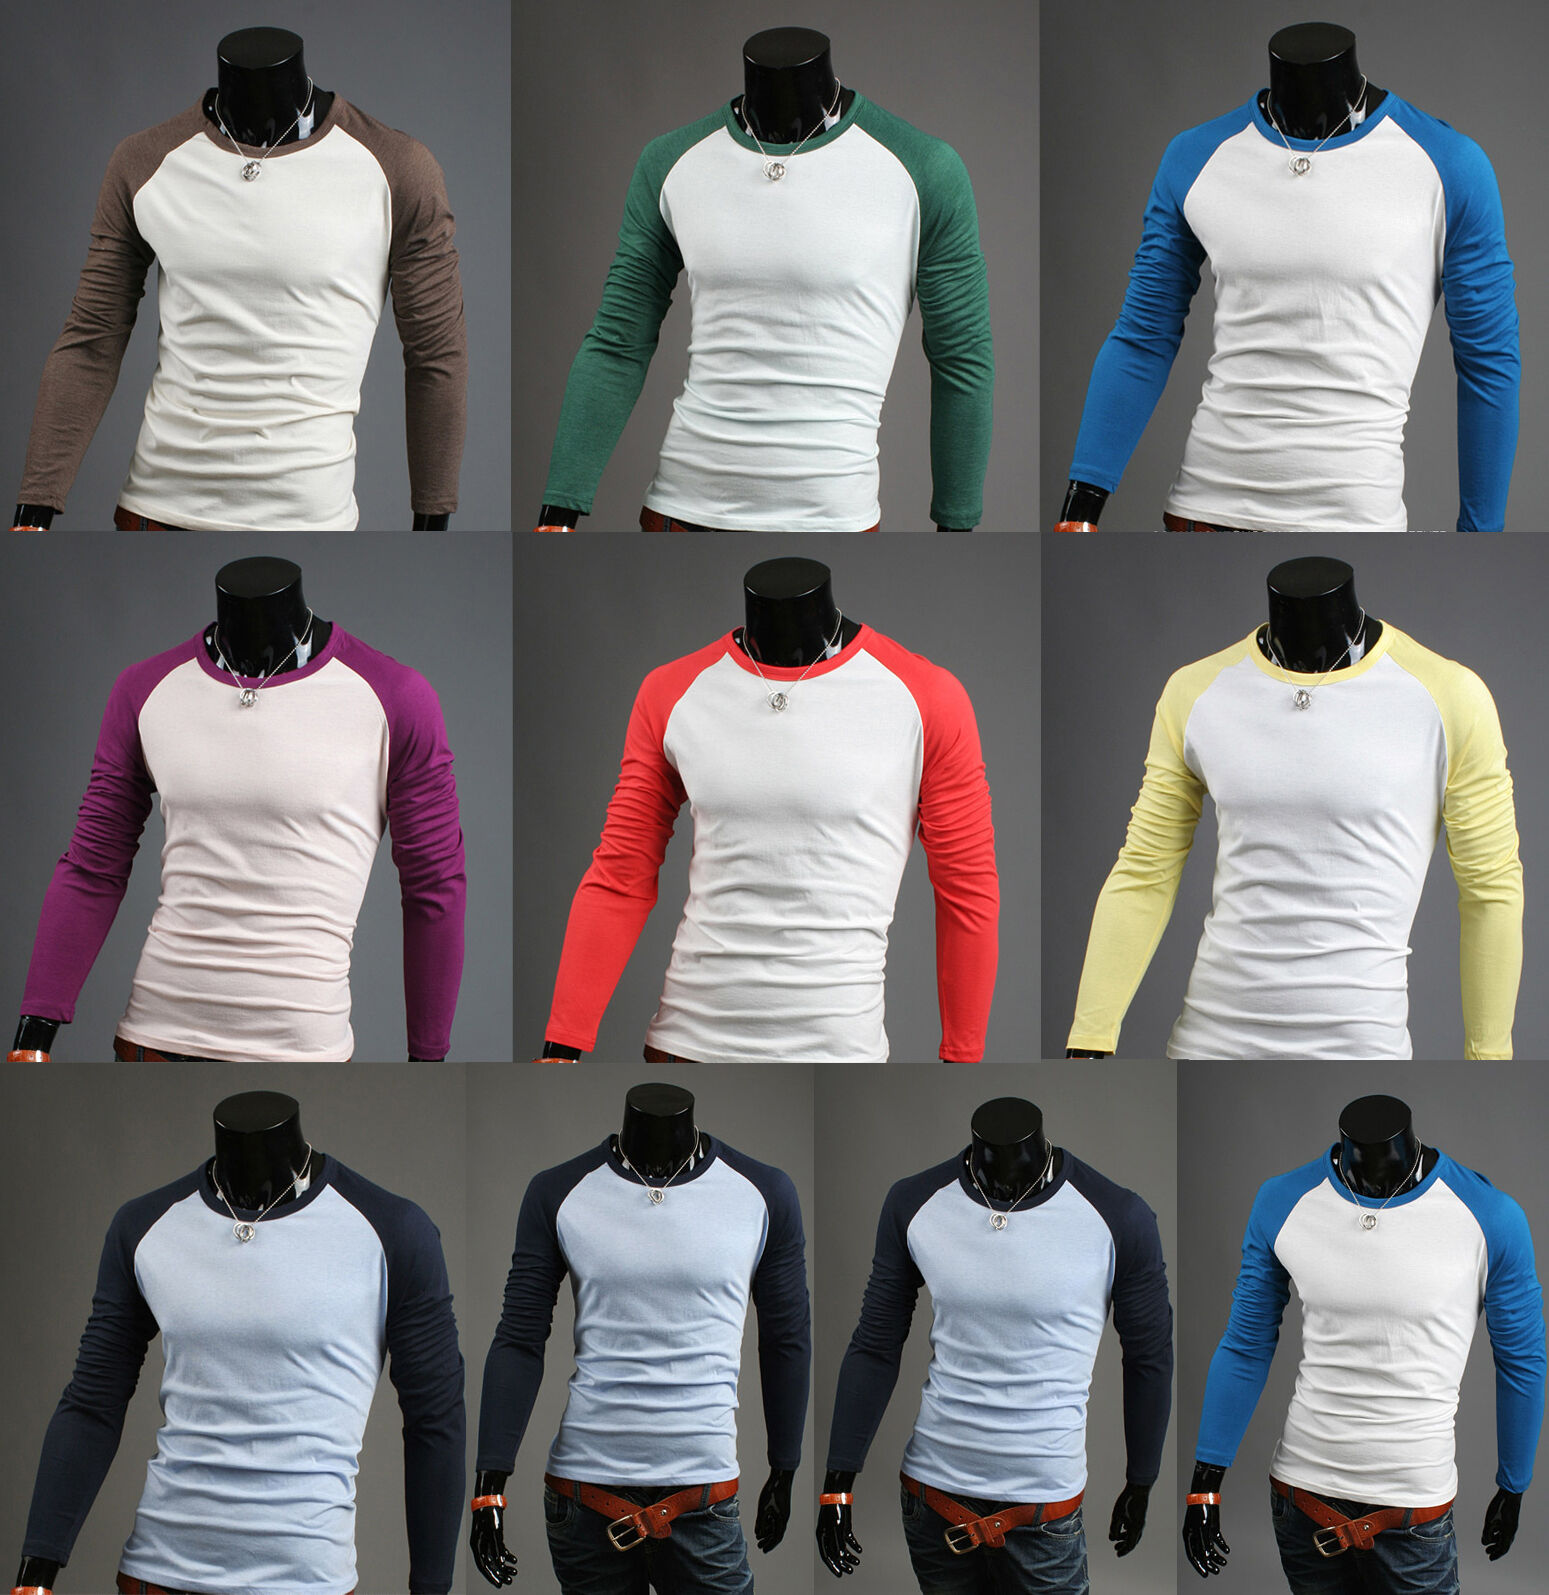 New long sleeve raglan t shirt mens baseball varsity woemns raglan top UK sz M L